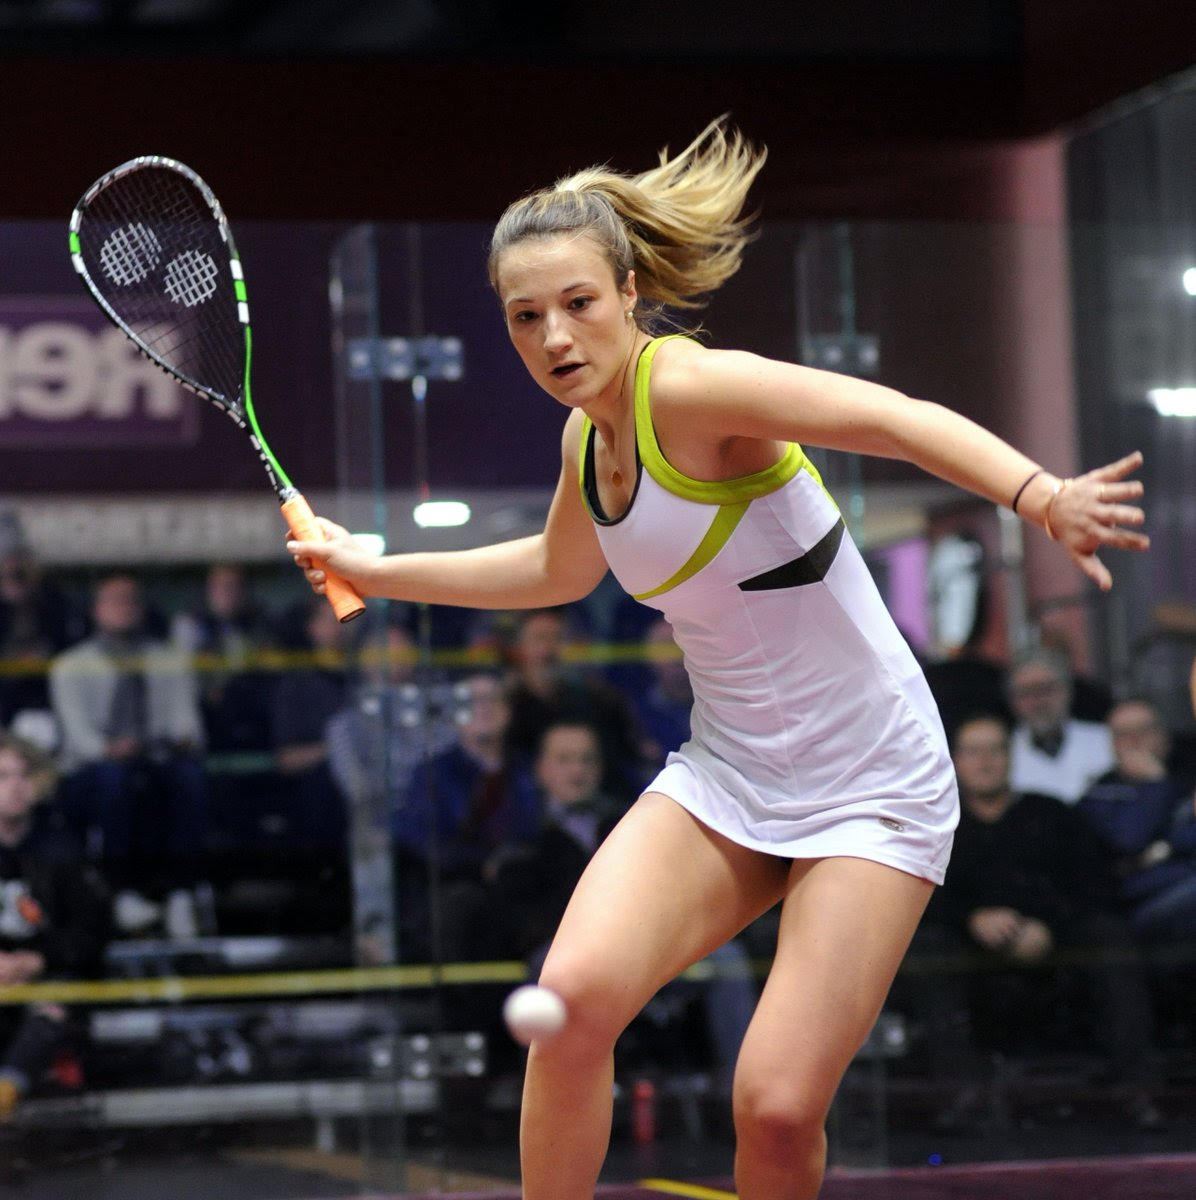 olivia fiechter psa trains at manhattan squash